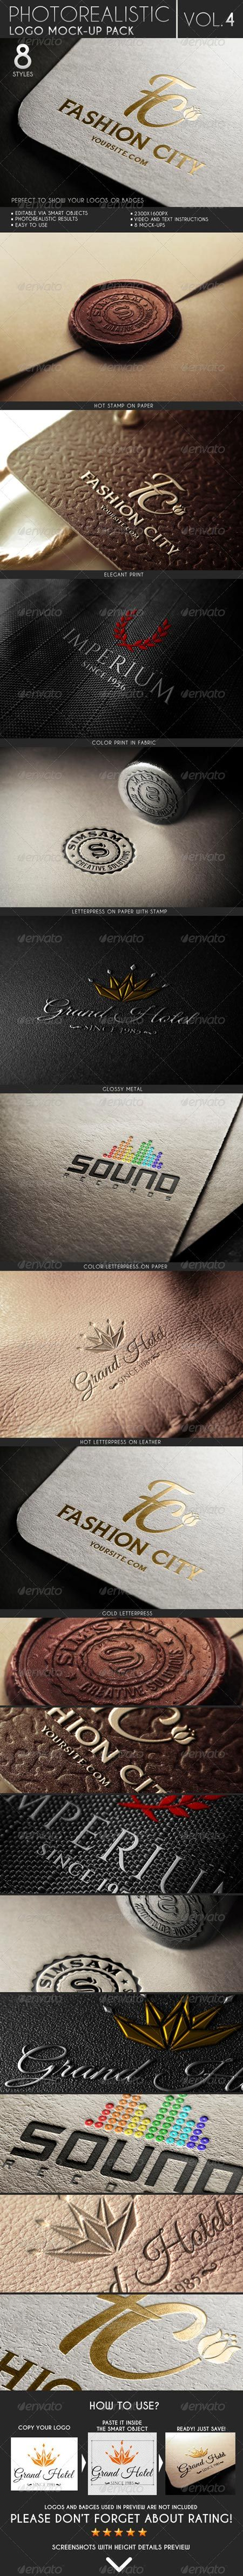 Photorealistic Logo Mock-Up Pack Vol 4 6879129 | psd keys